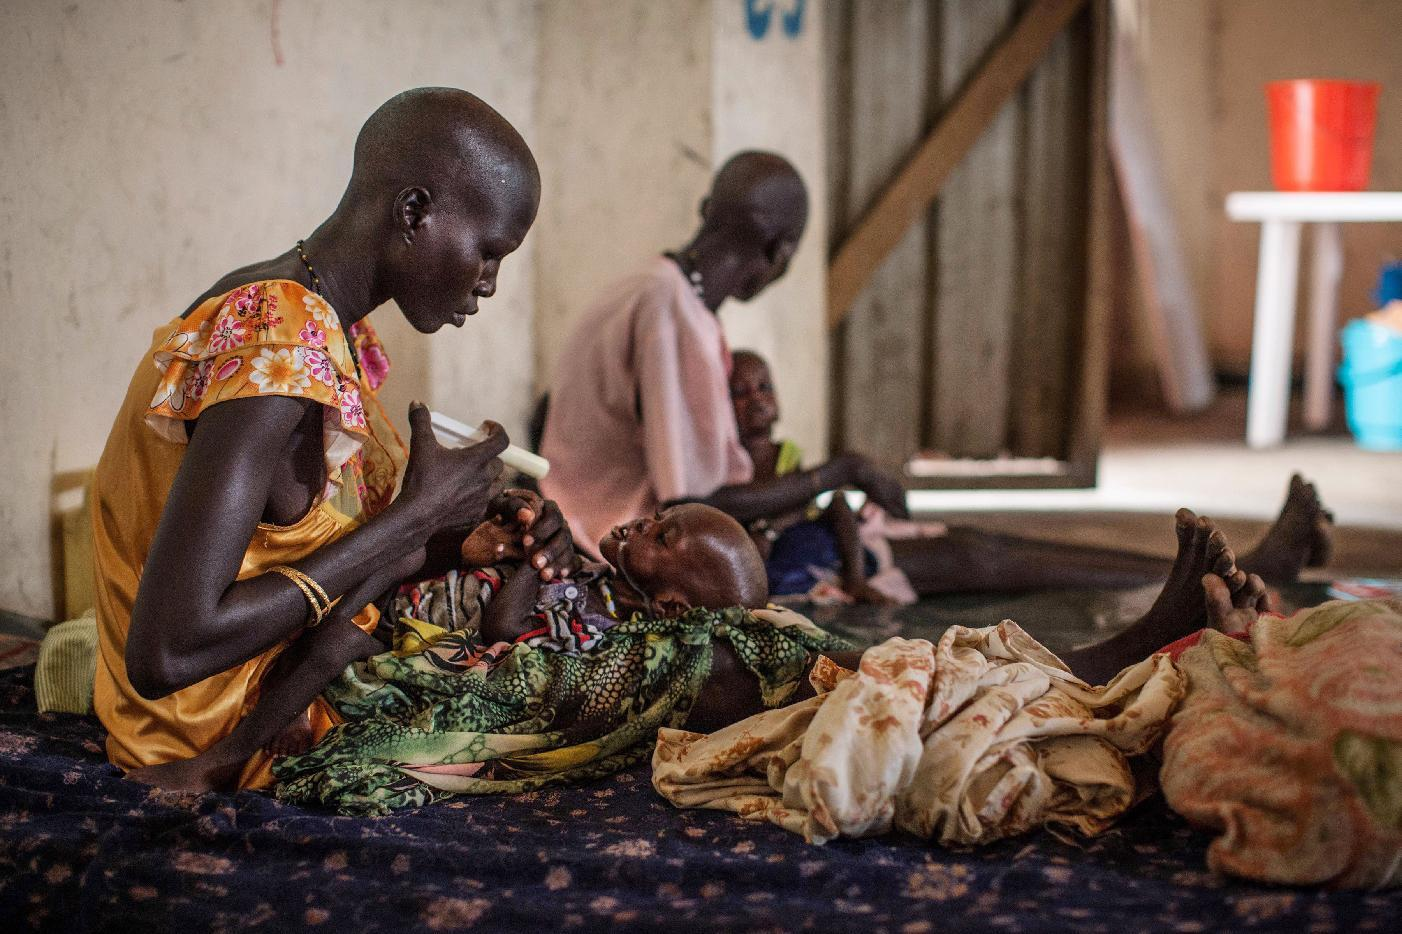 Malnourished children receive treatment at the Leer Hospital, South Sudan, on July 7, 2014 (AFP Photo/Nichole Sobecki)